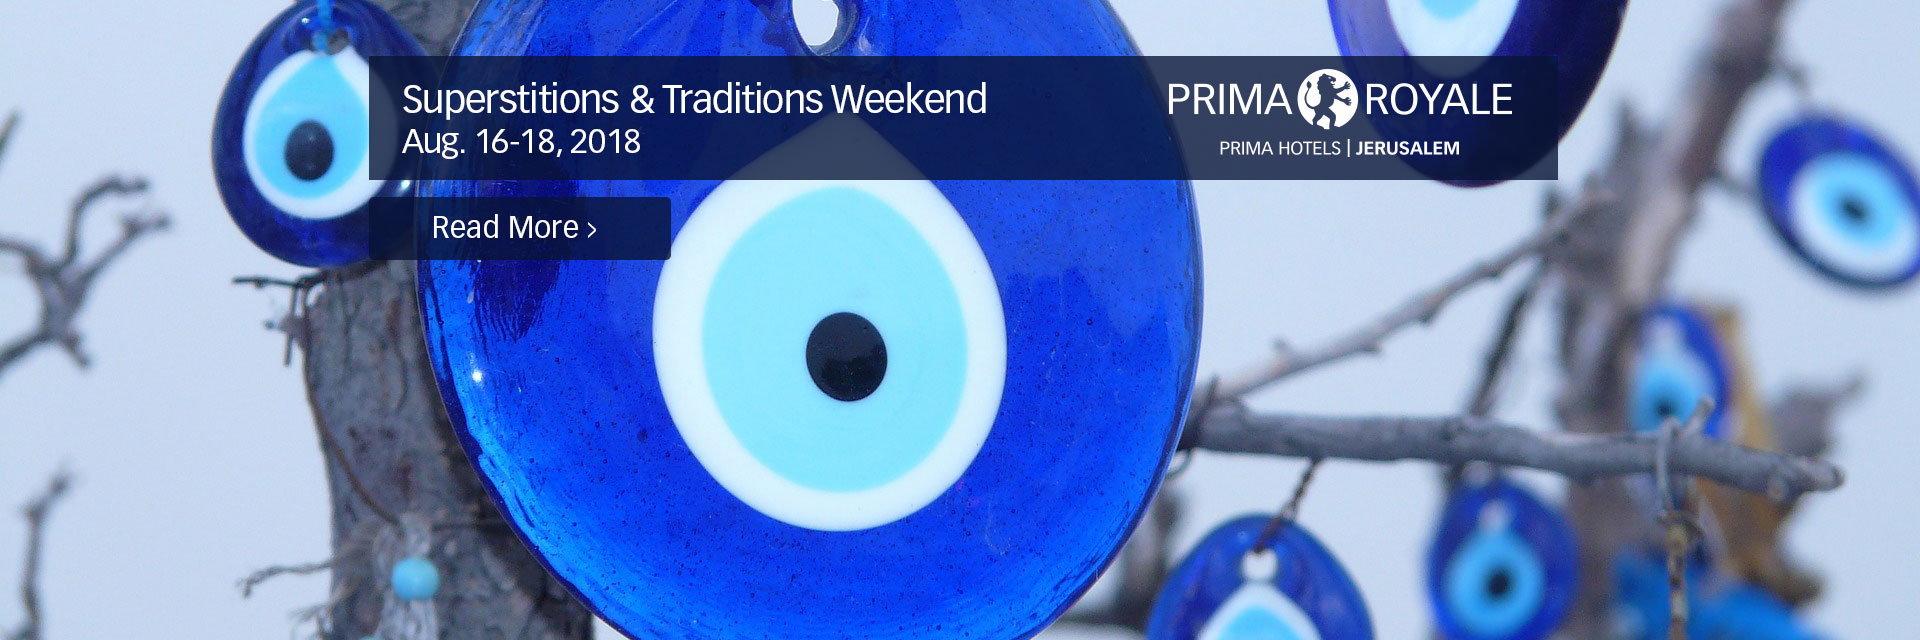 Superstitions and Traditions Weekend